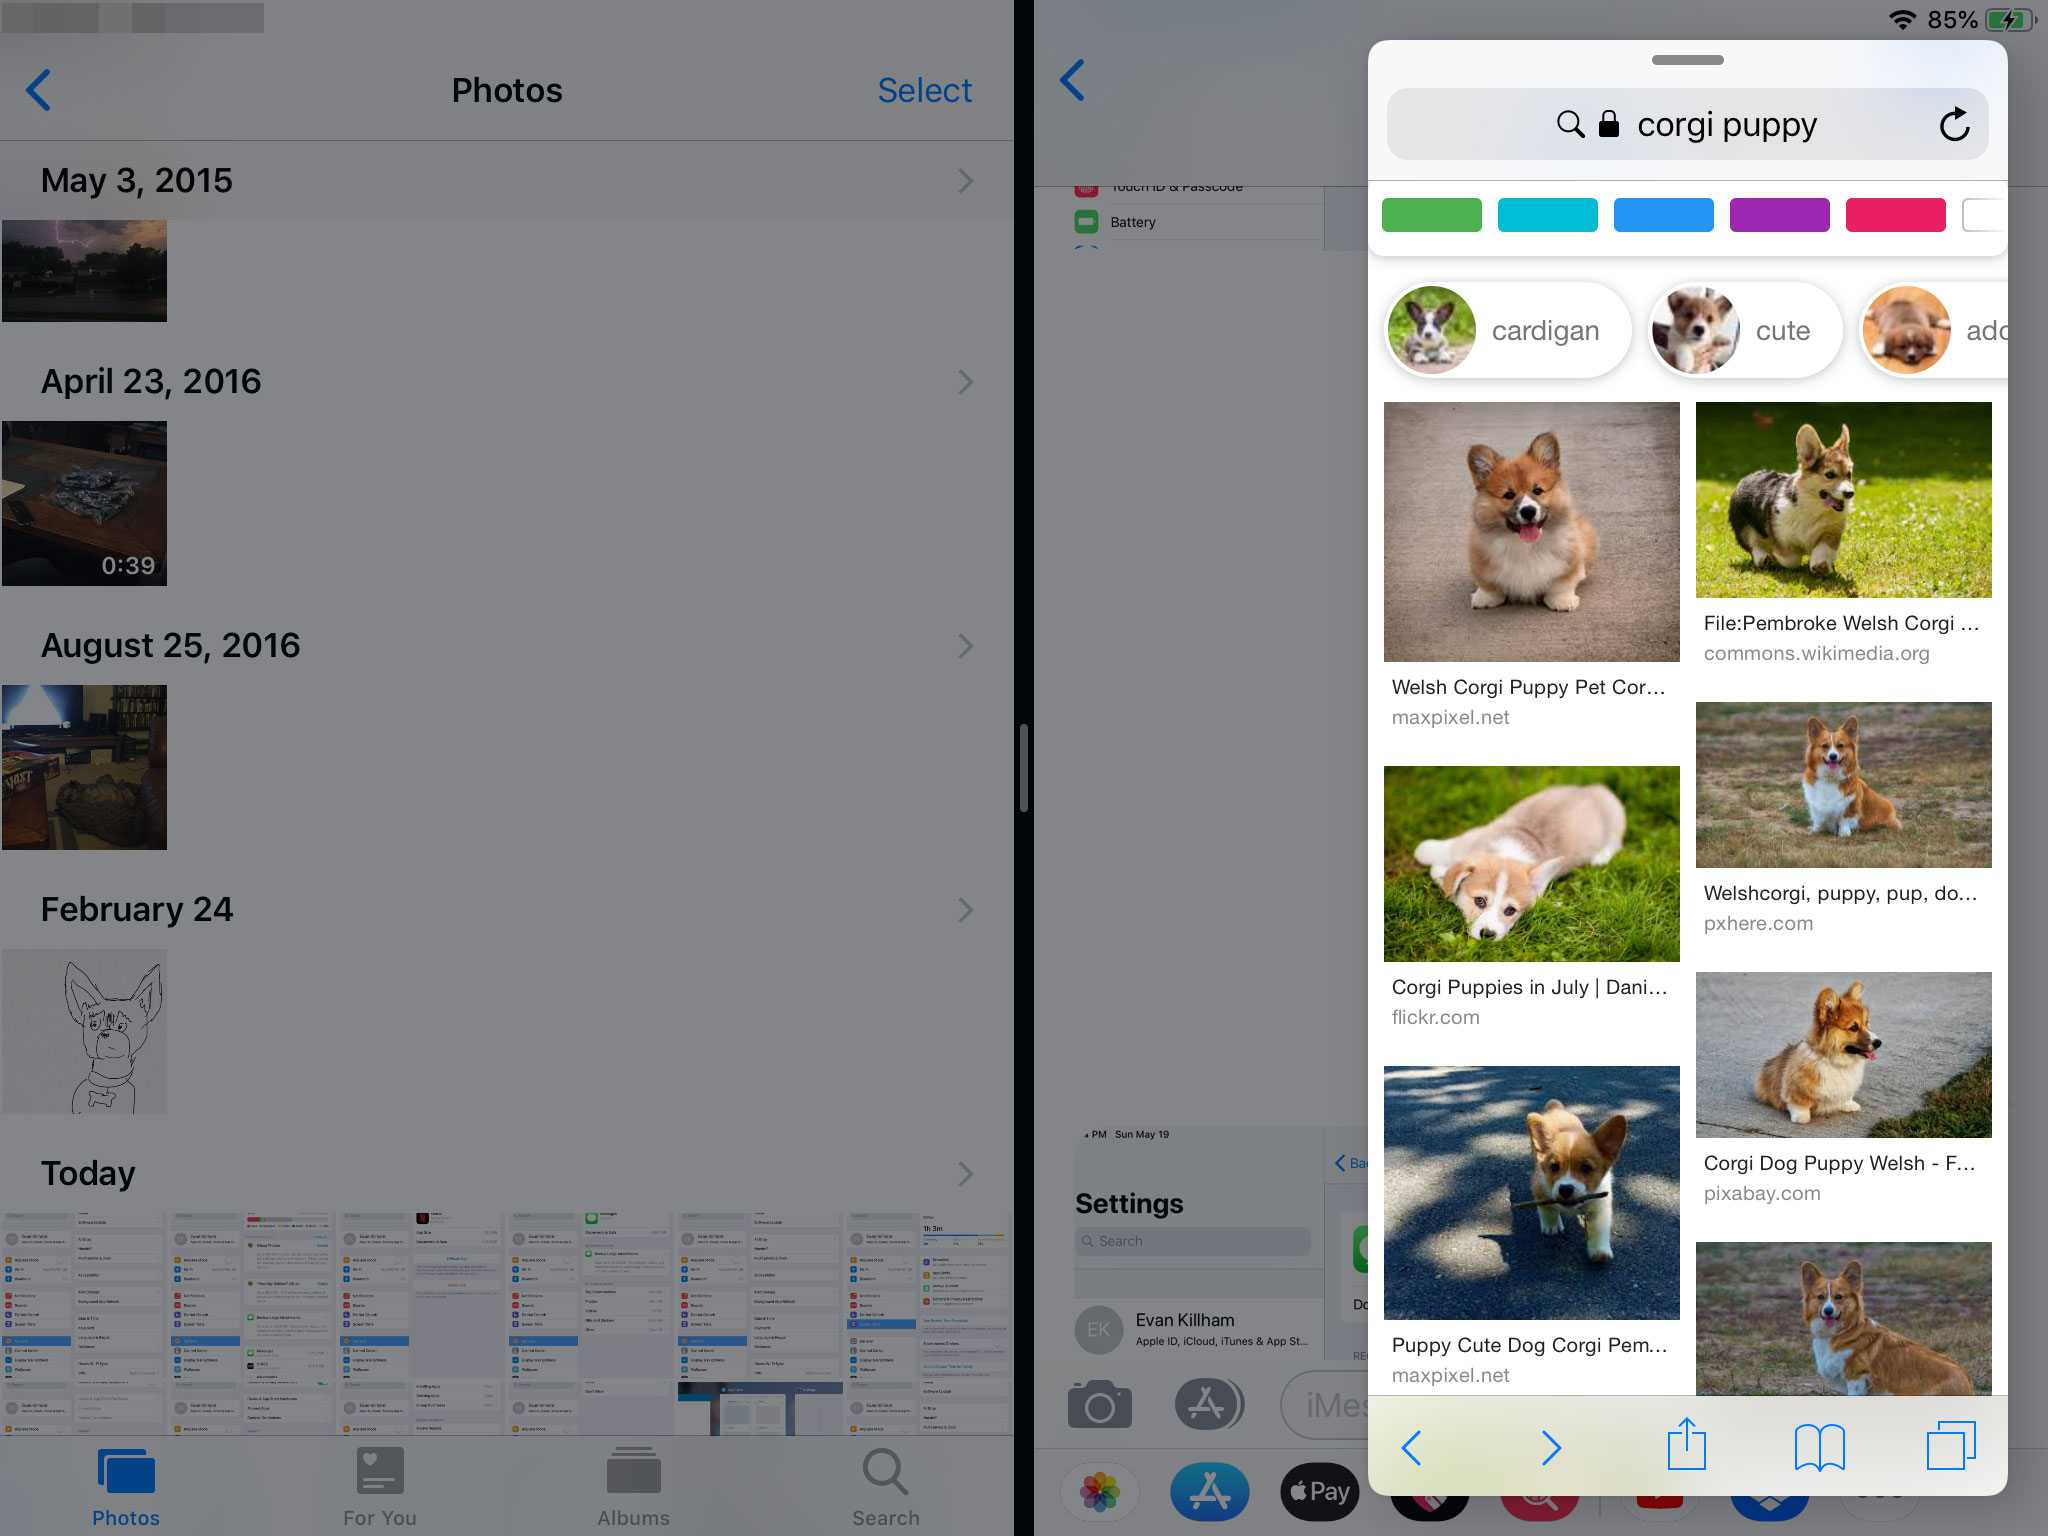 Learn to Navigate the iPad Like a Pro With These Gestures